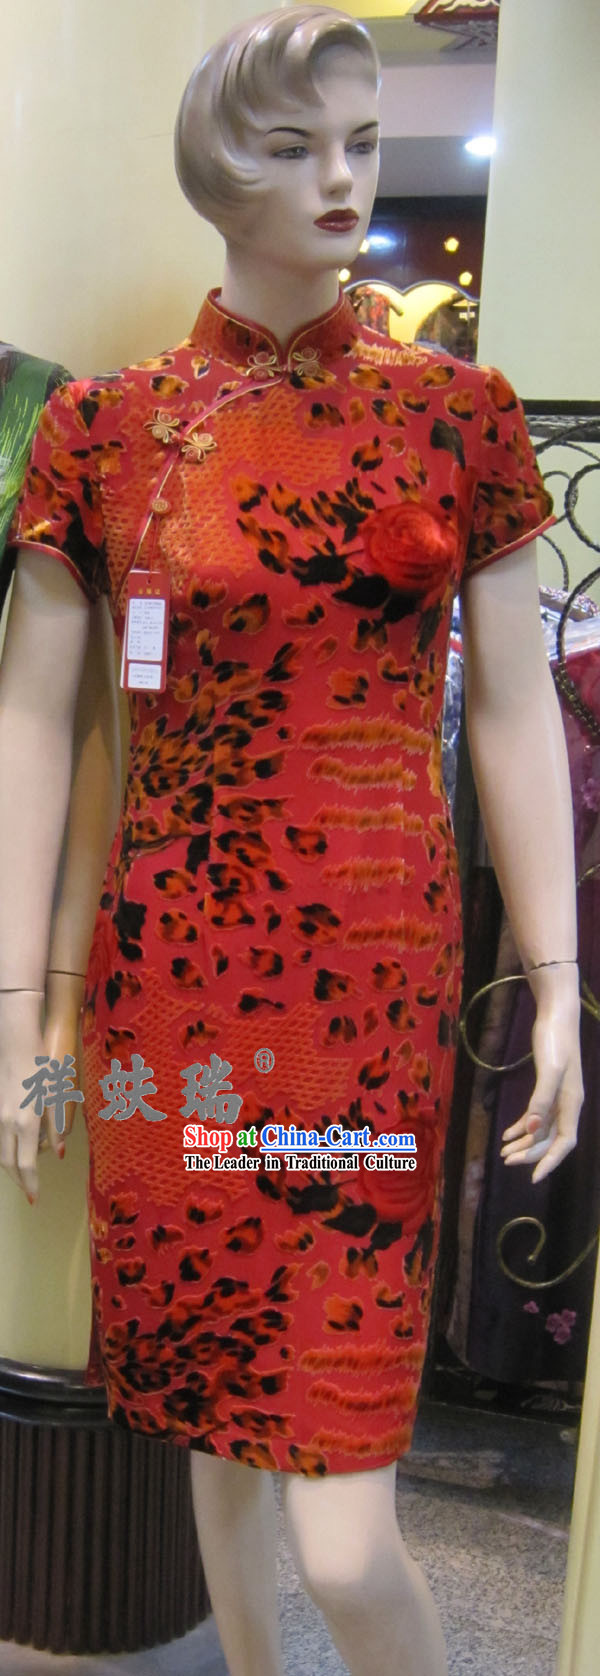 Beijing Rui Fu Xiang Silk Red Qipao for Women